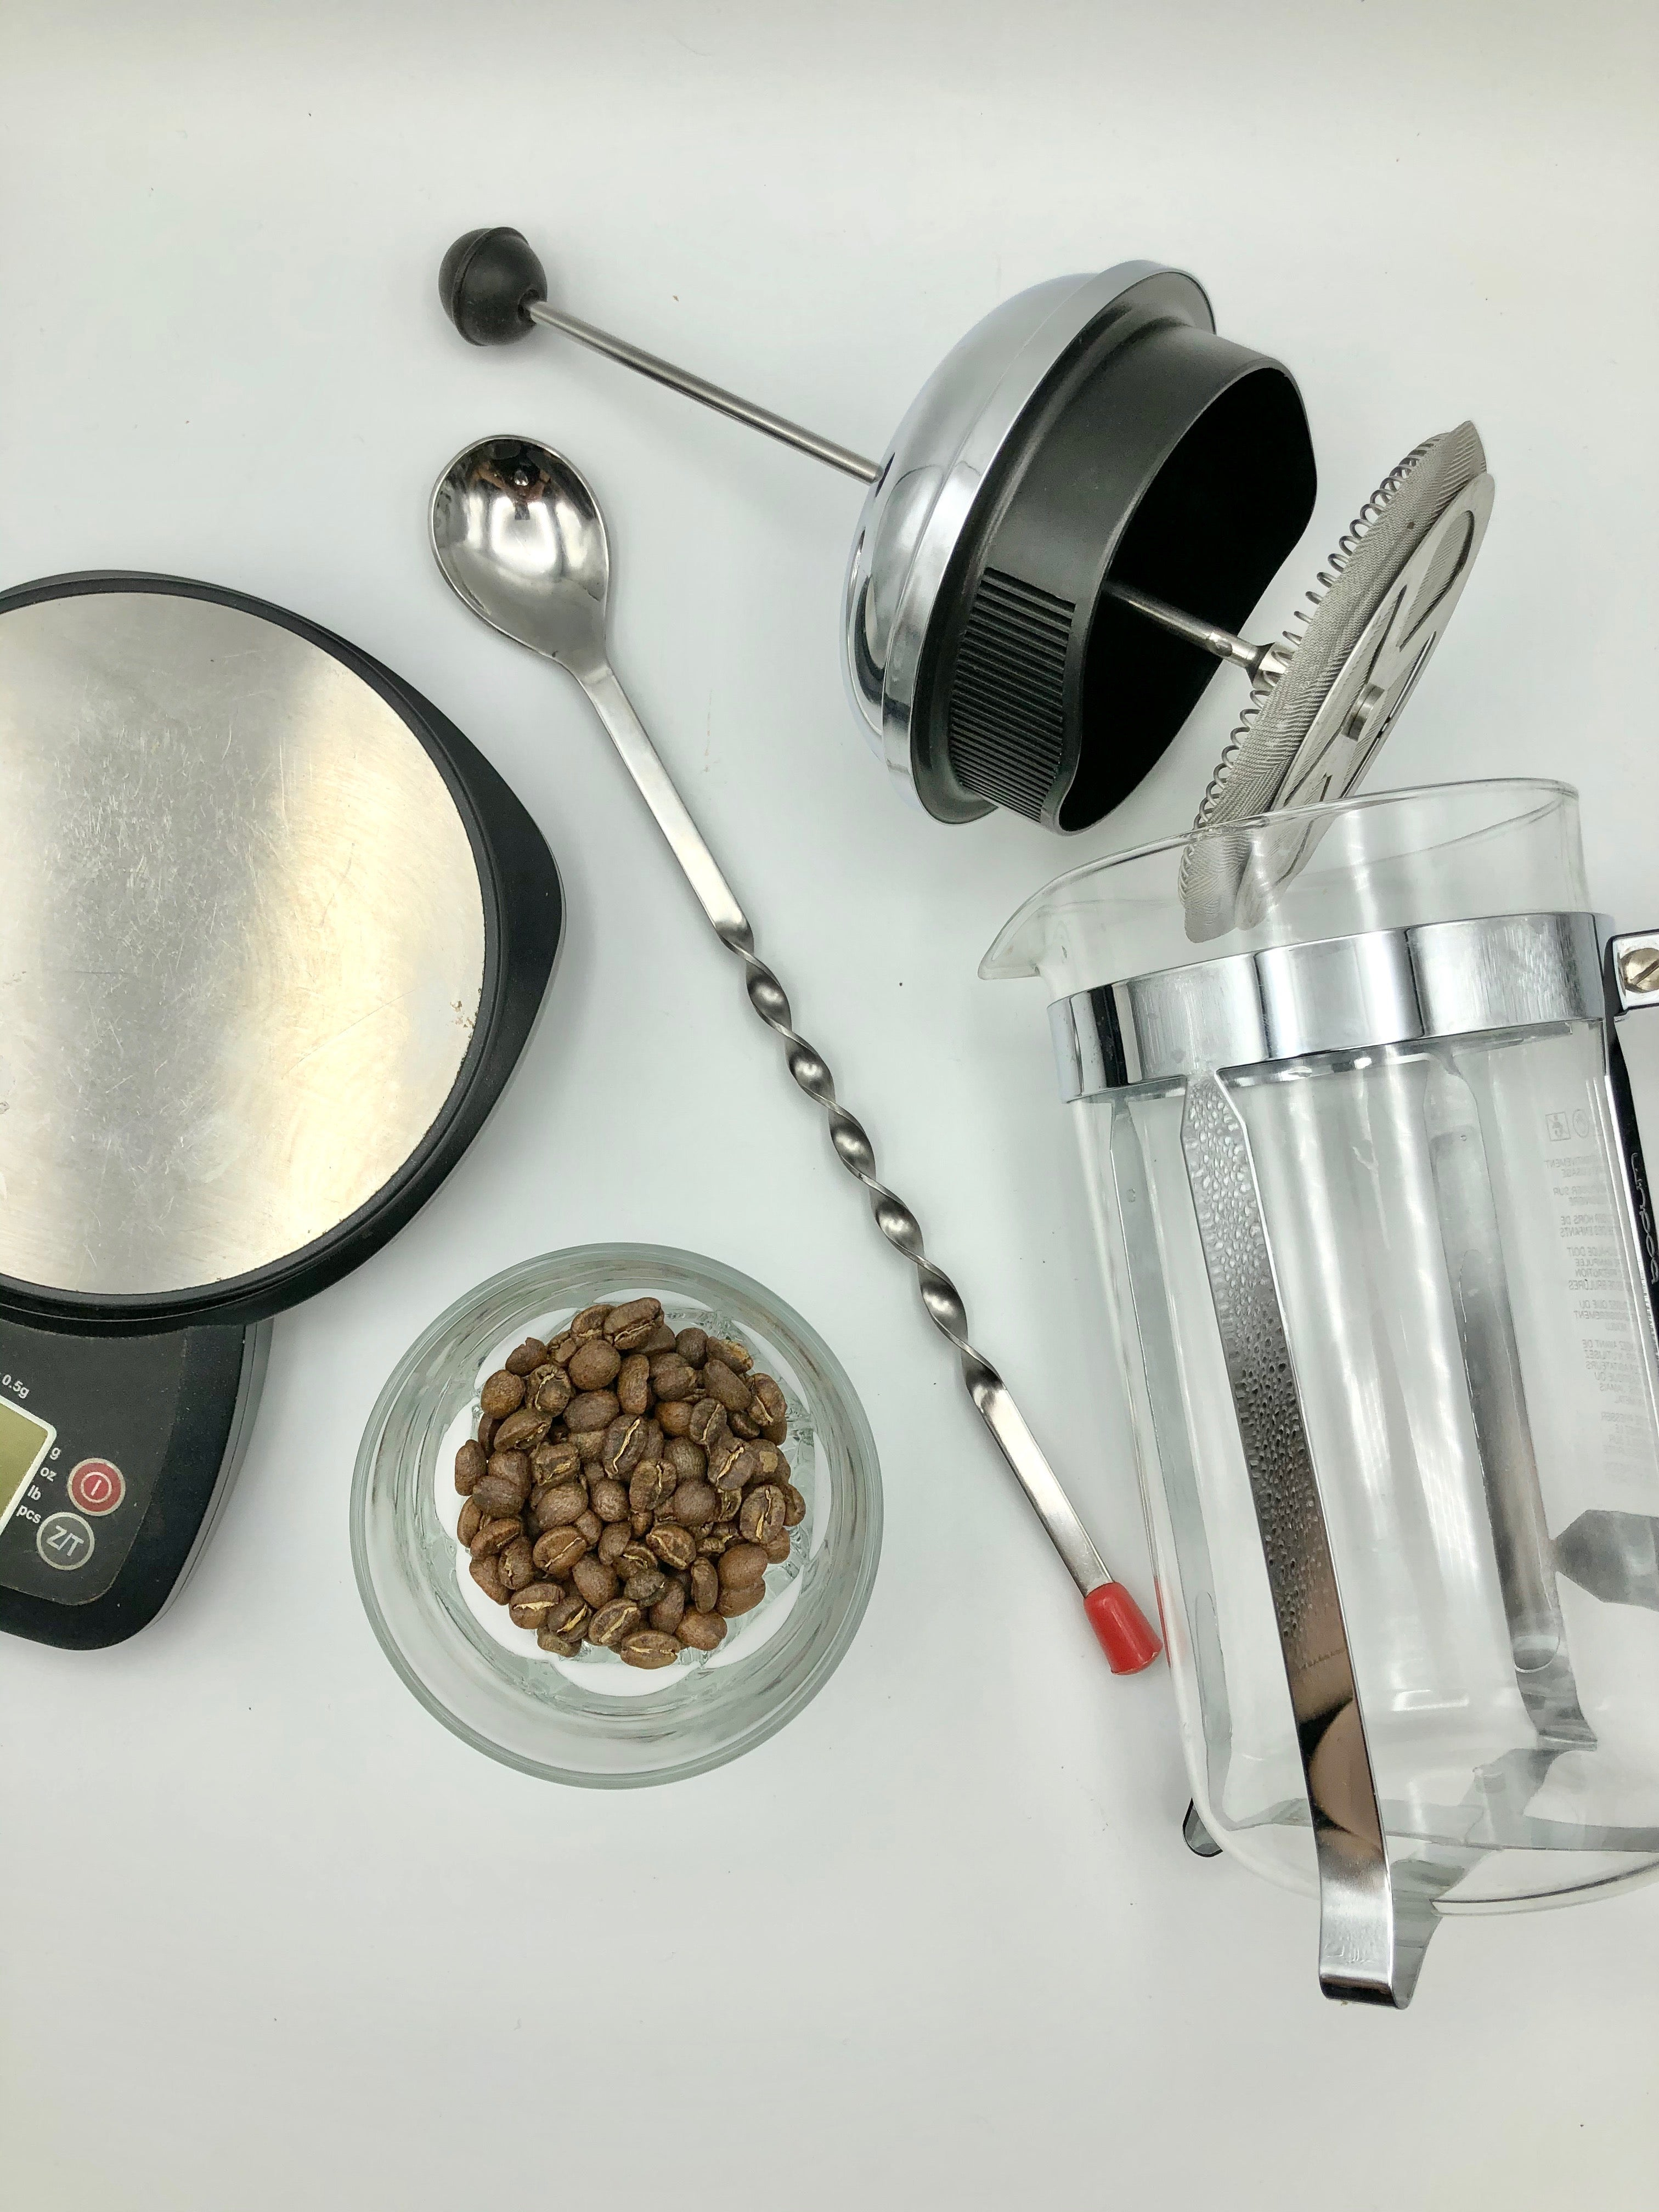 Tools needed to brew coffee in a french press, scale, coffee, spoon for stirring and french press